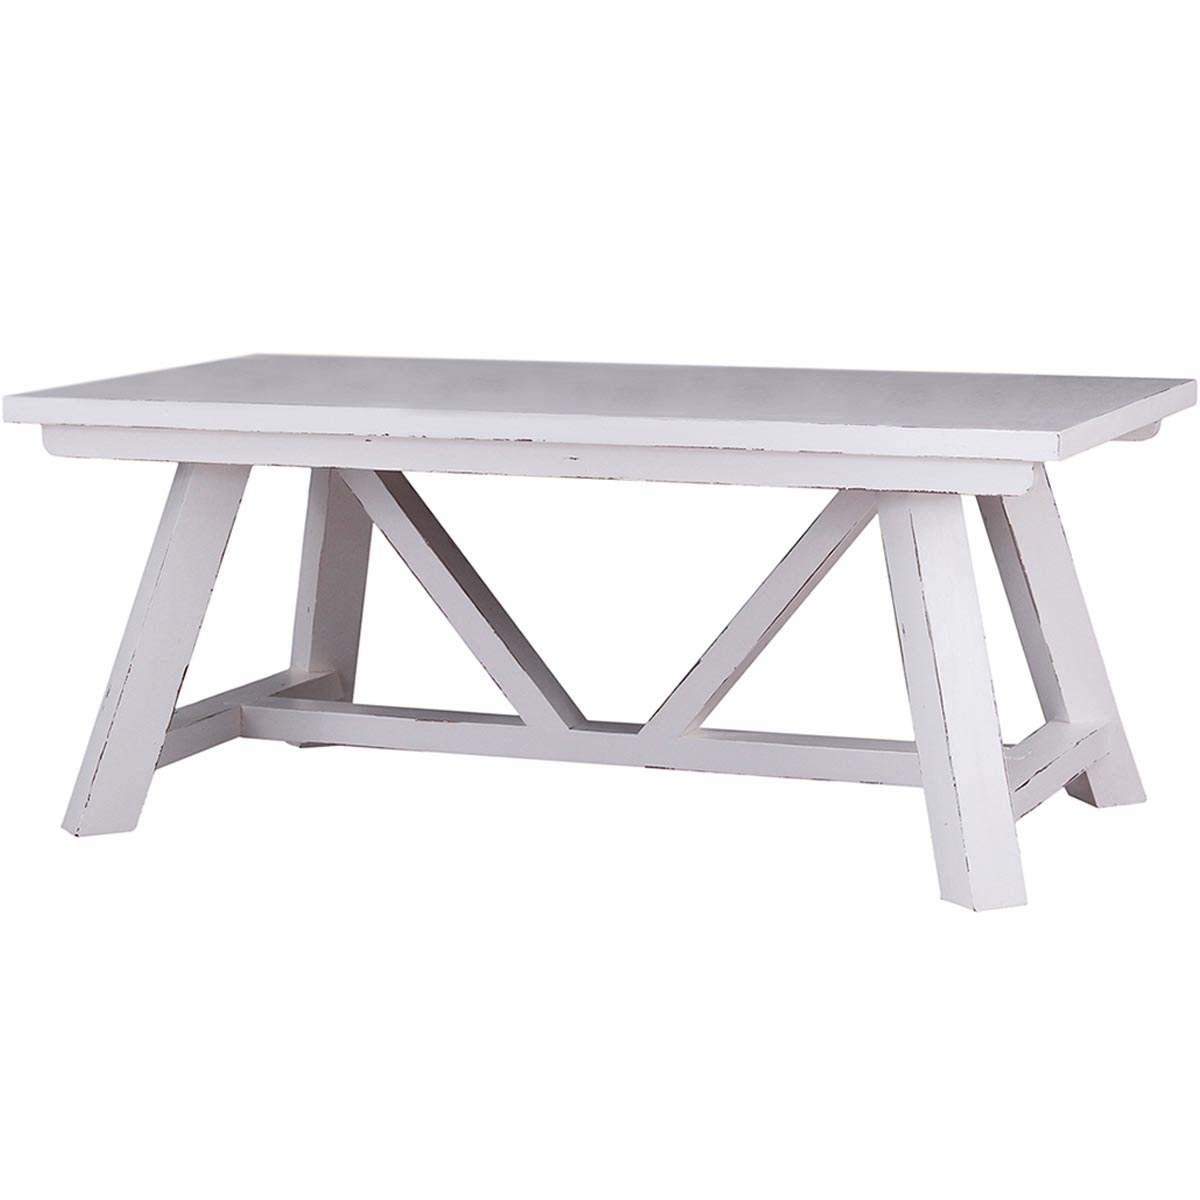 Bankside Trestle Dining Table 6' w/ out Grooves